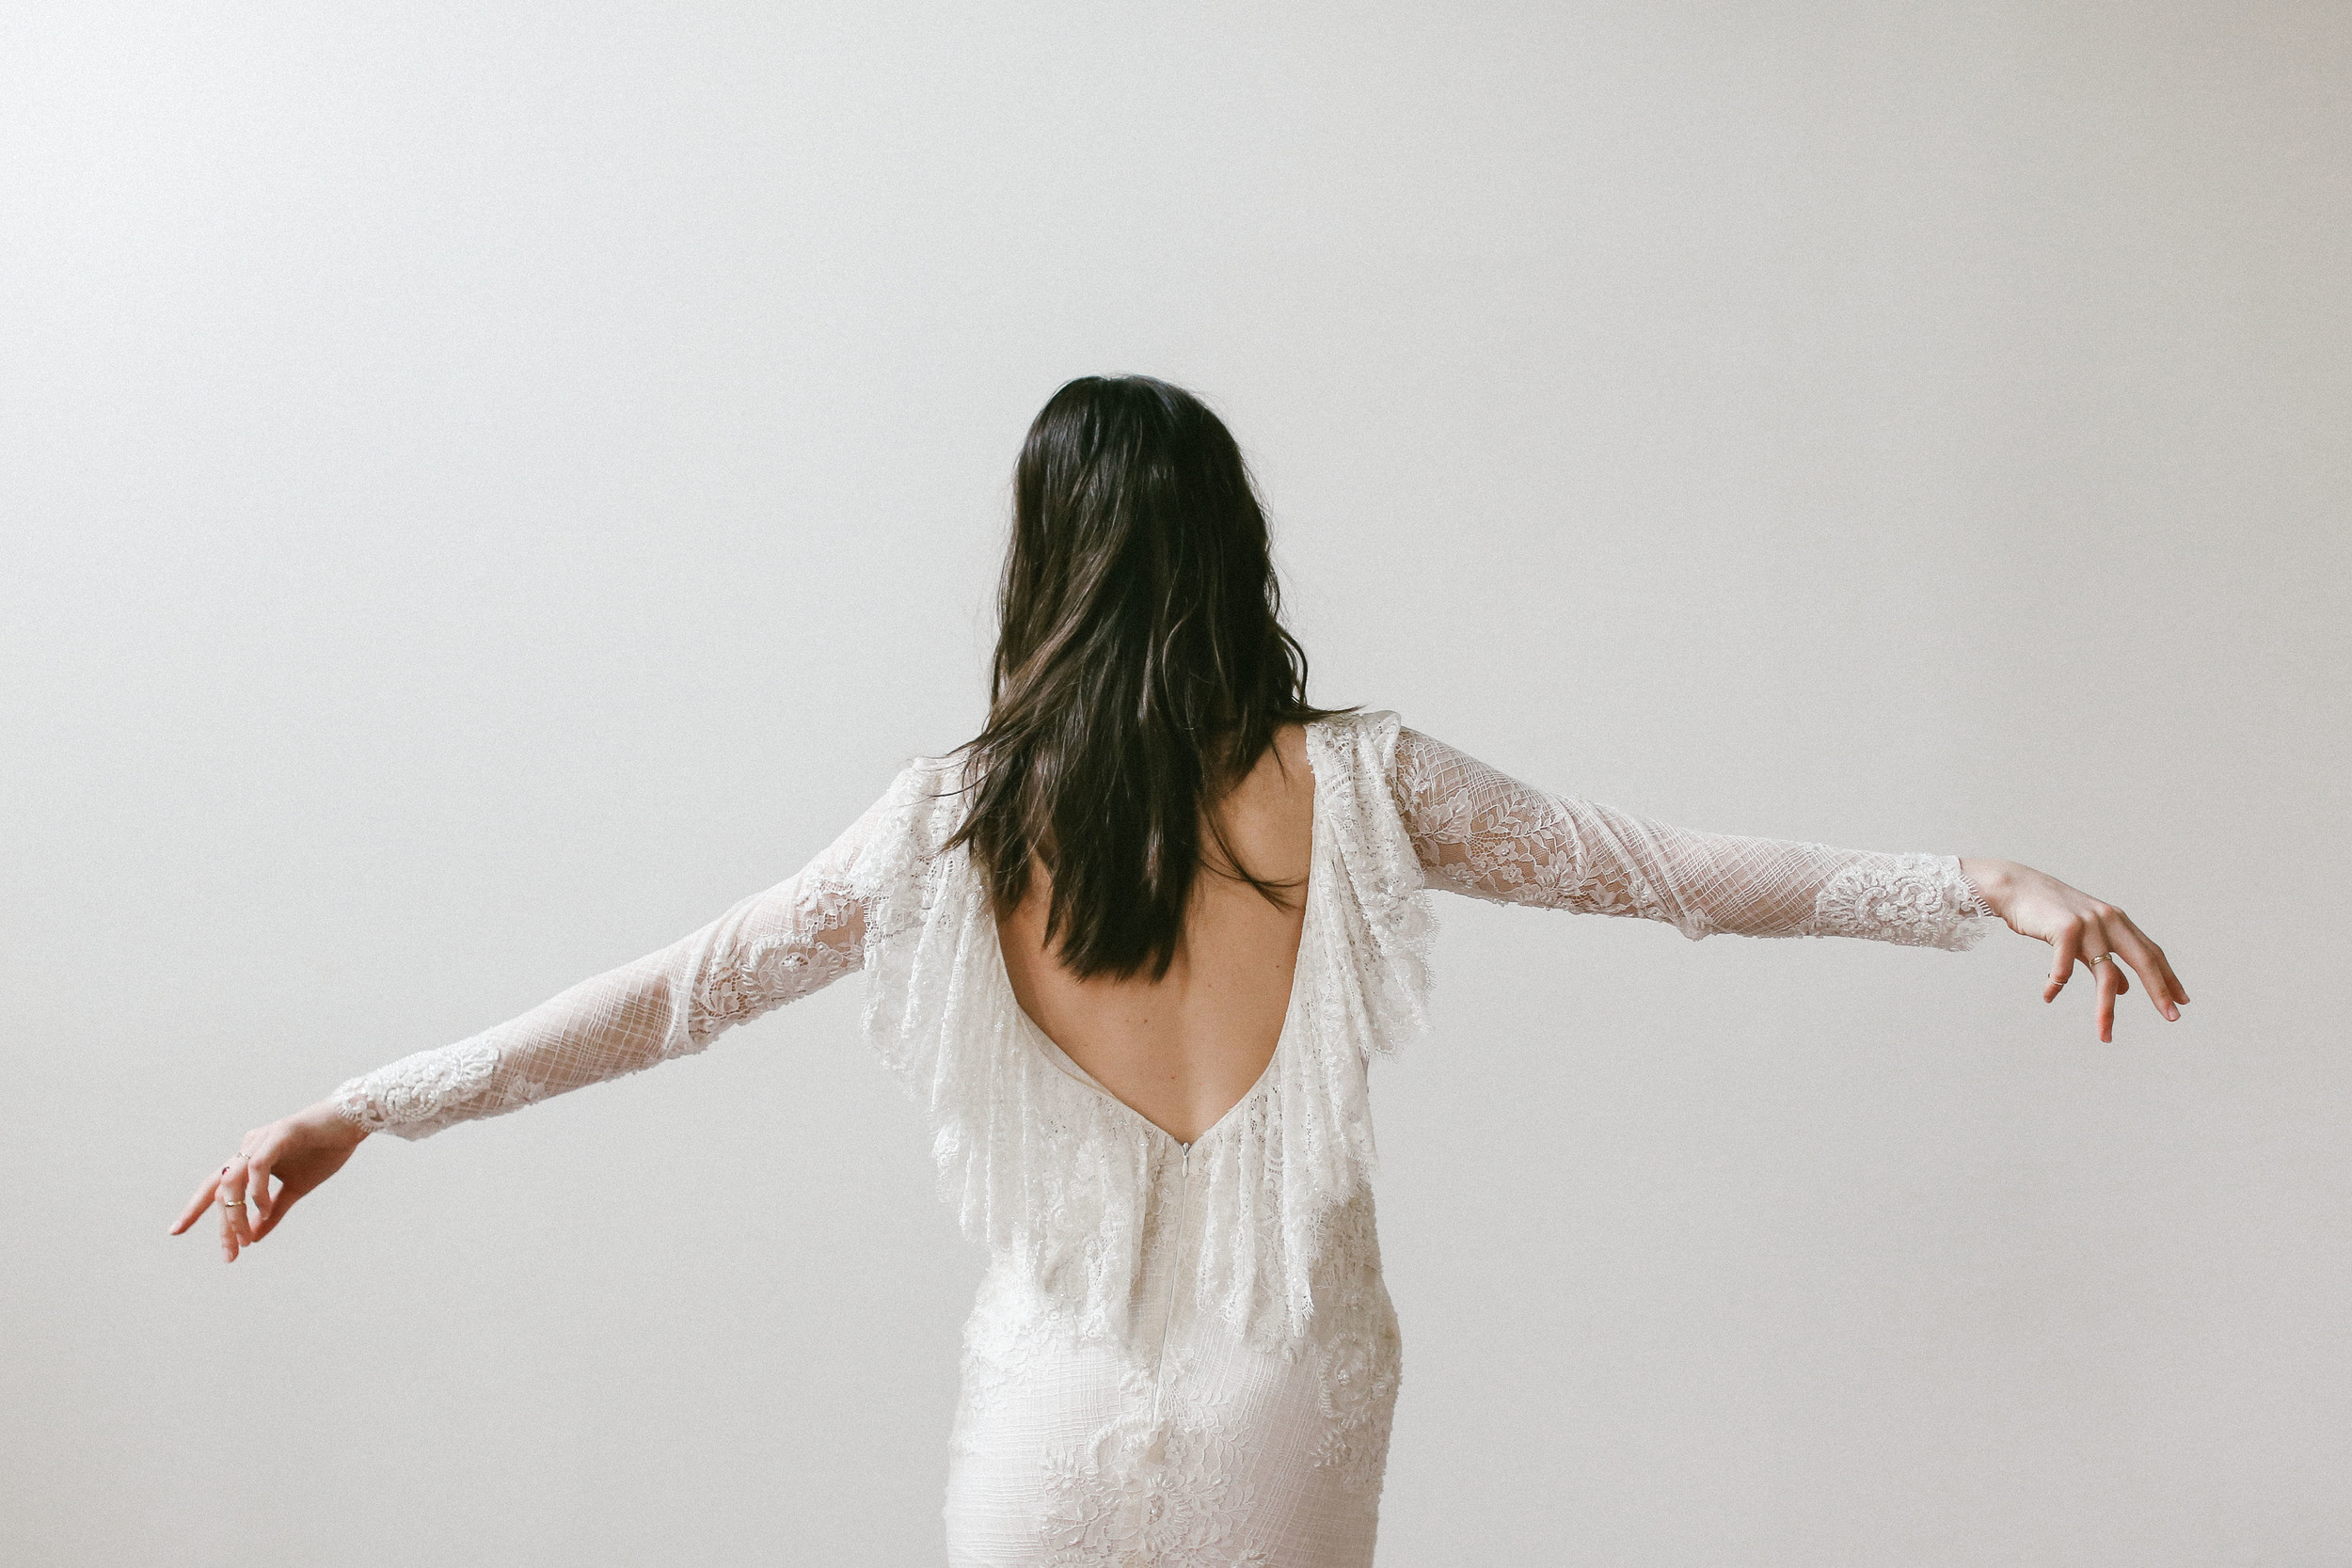 finery-boutique-huntsivlle-alabama-bohemian-wedding-shop-odylyne-the-ceremony-yolan-cris-bride-bridal-yaki-ravid-berta-calla-blanche-lookbook-cool-nashville-tenessee-flutter-open-back